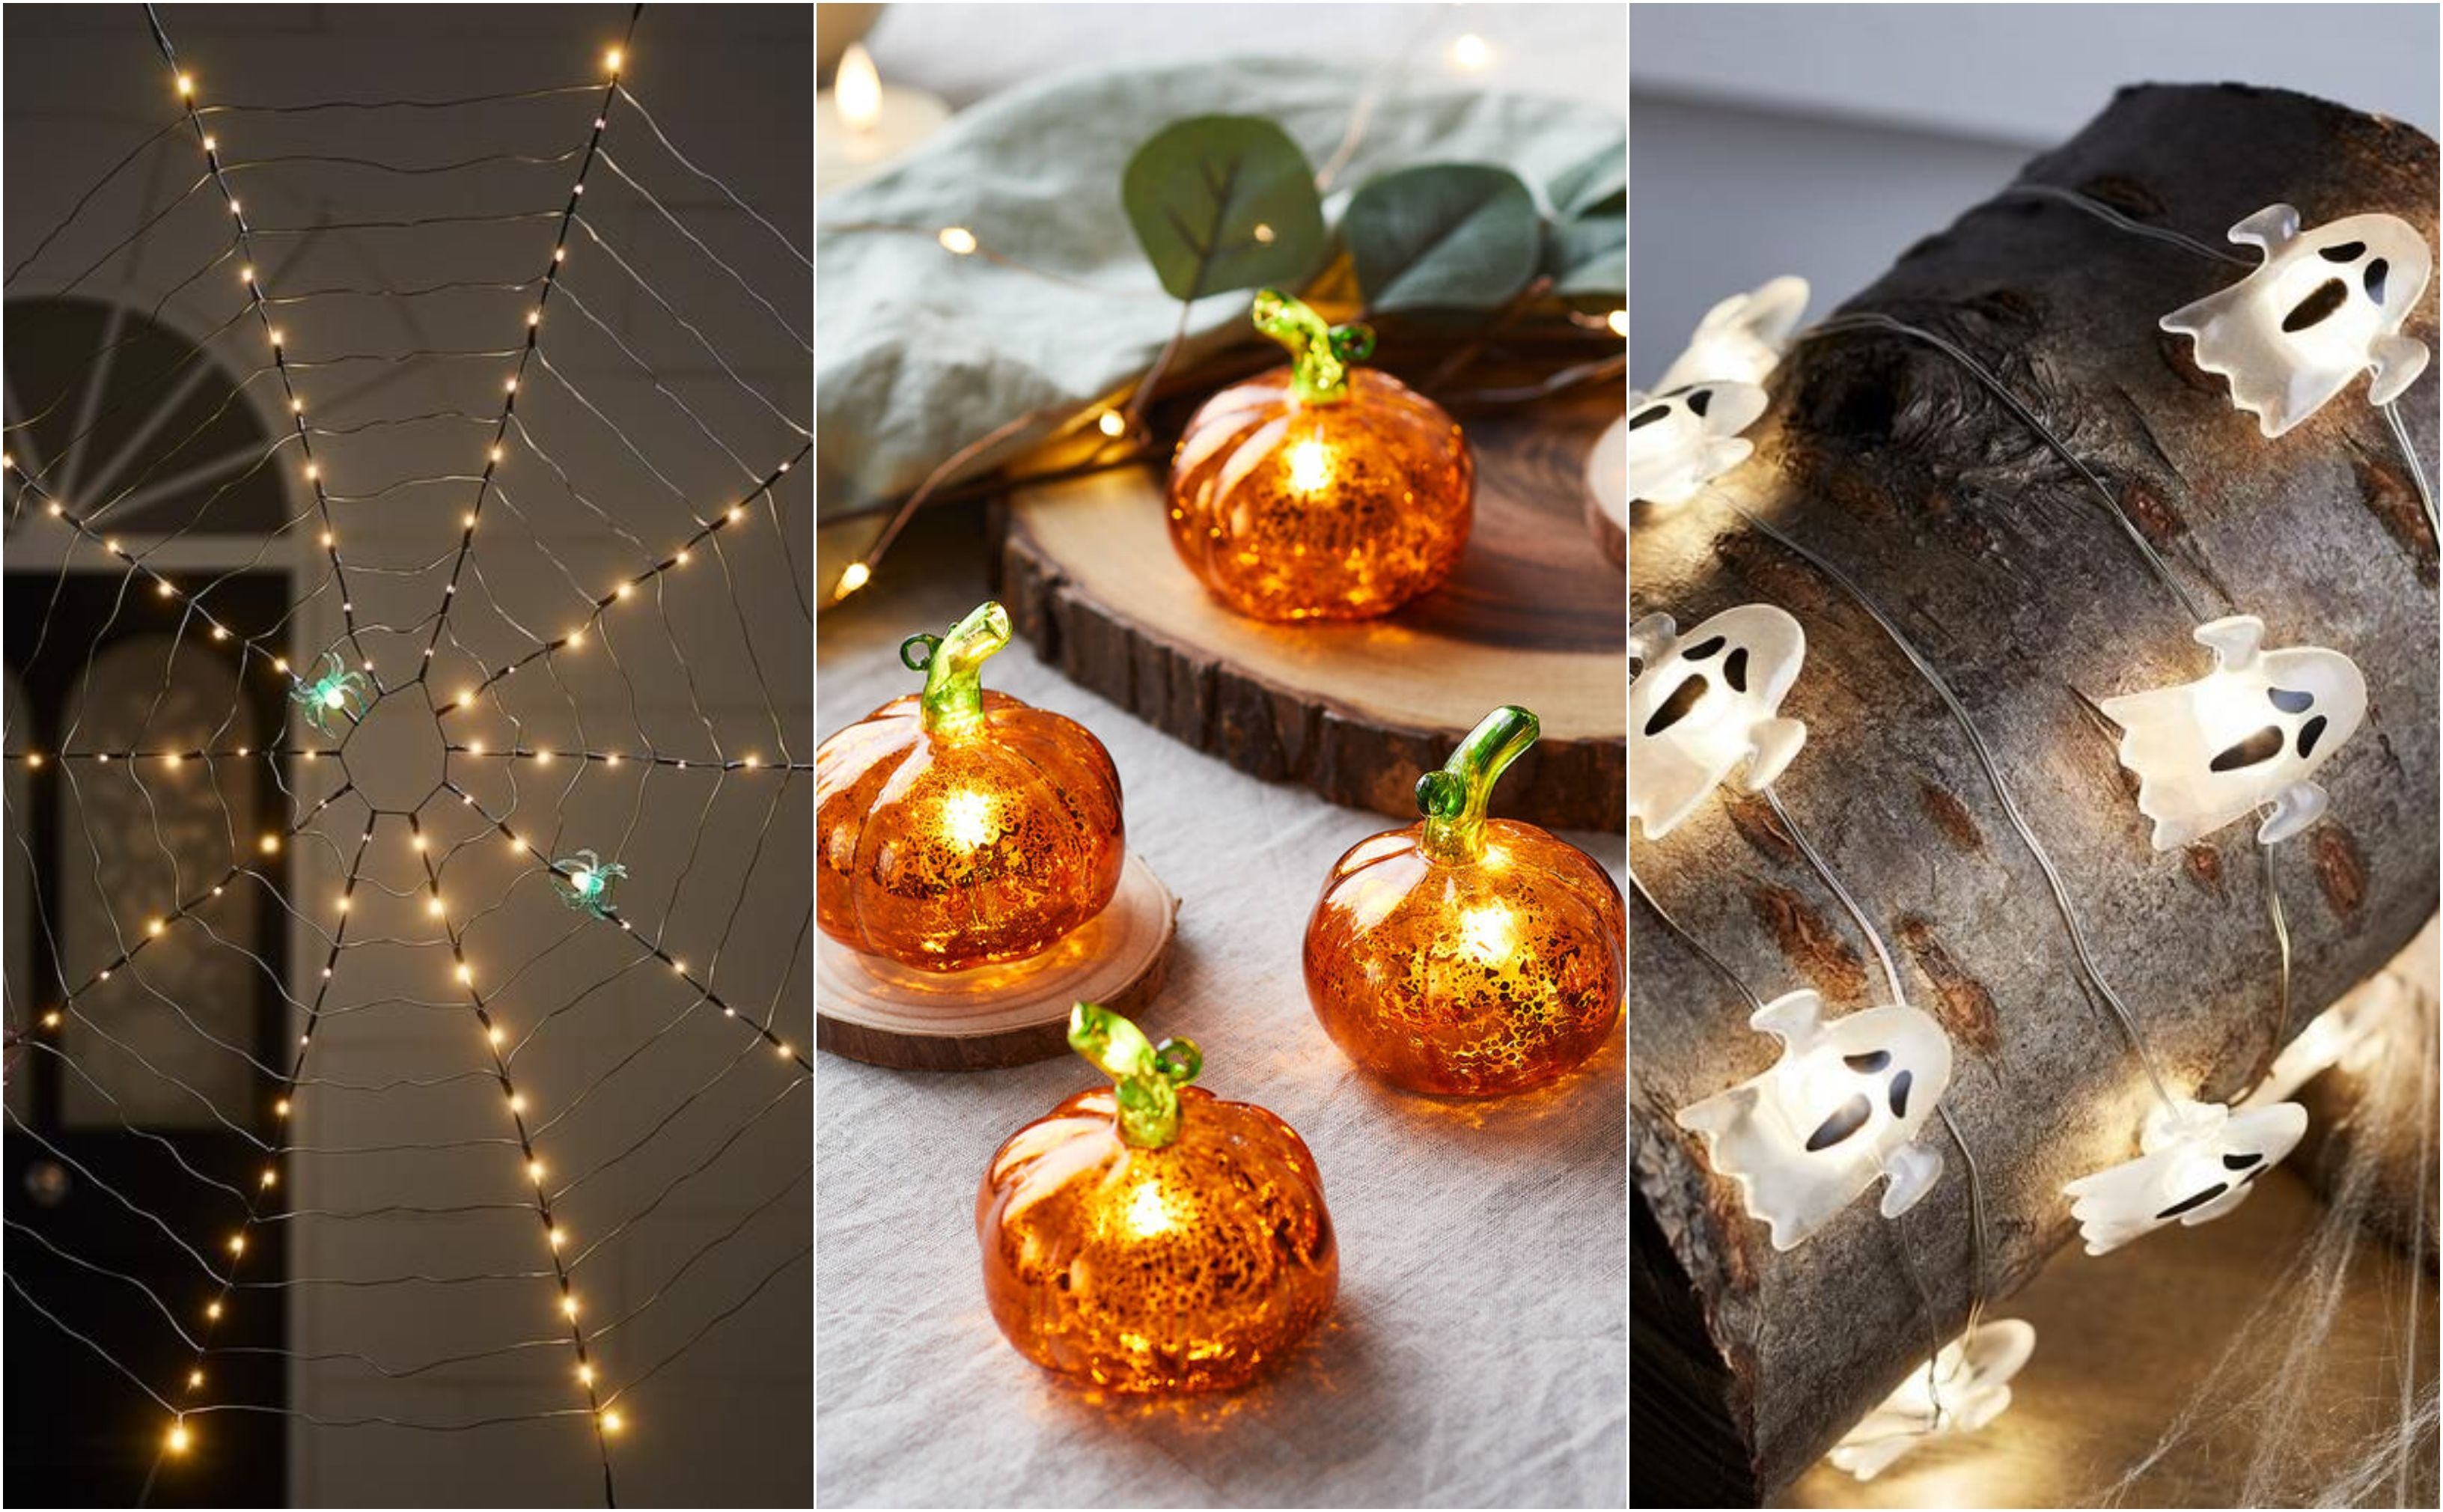 18 Best Halloween Decorations For The Home And Garden